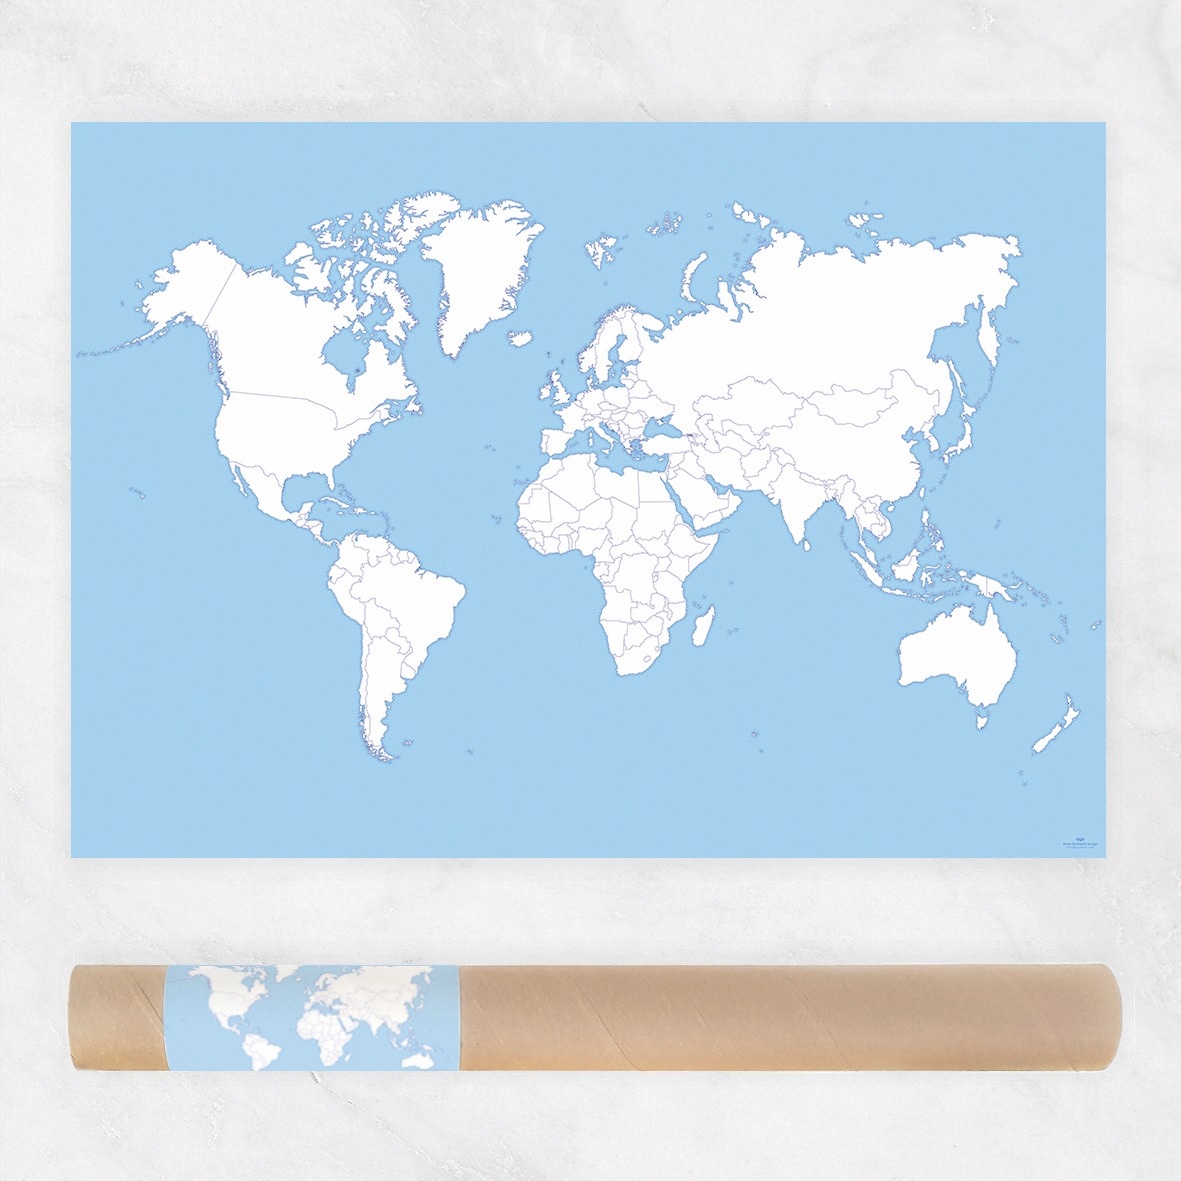 Preorder coloring world map poster anna grunduls design coloring world map poster sale world publicscrutiny Gallery